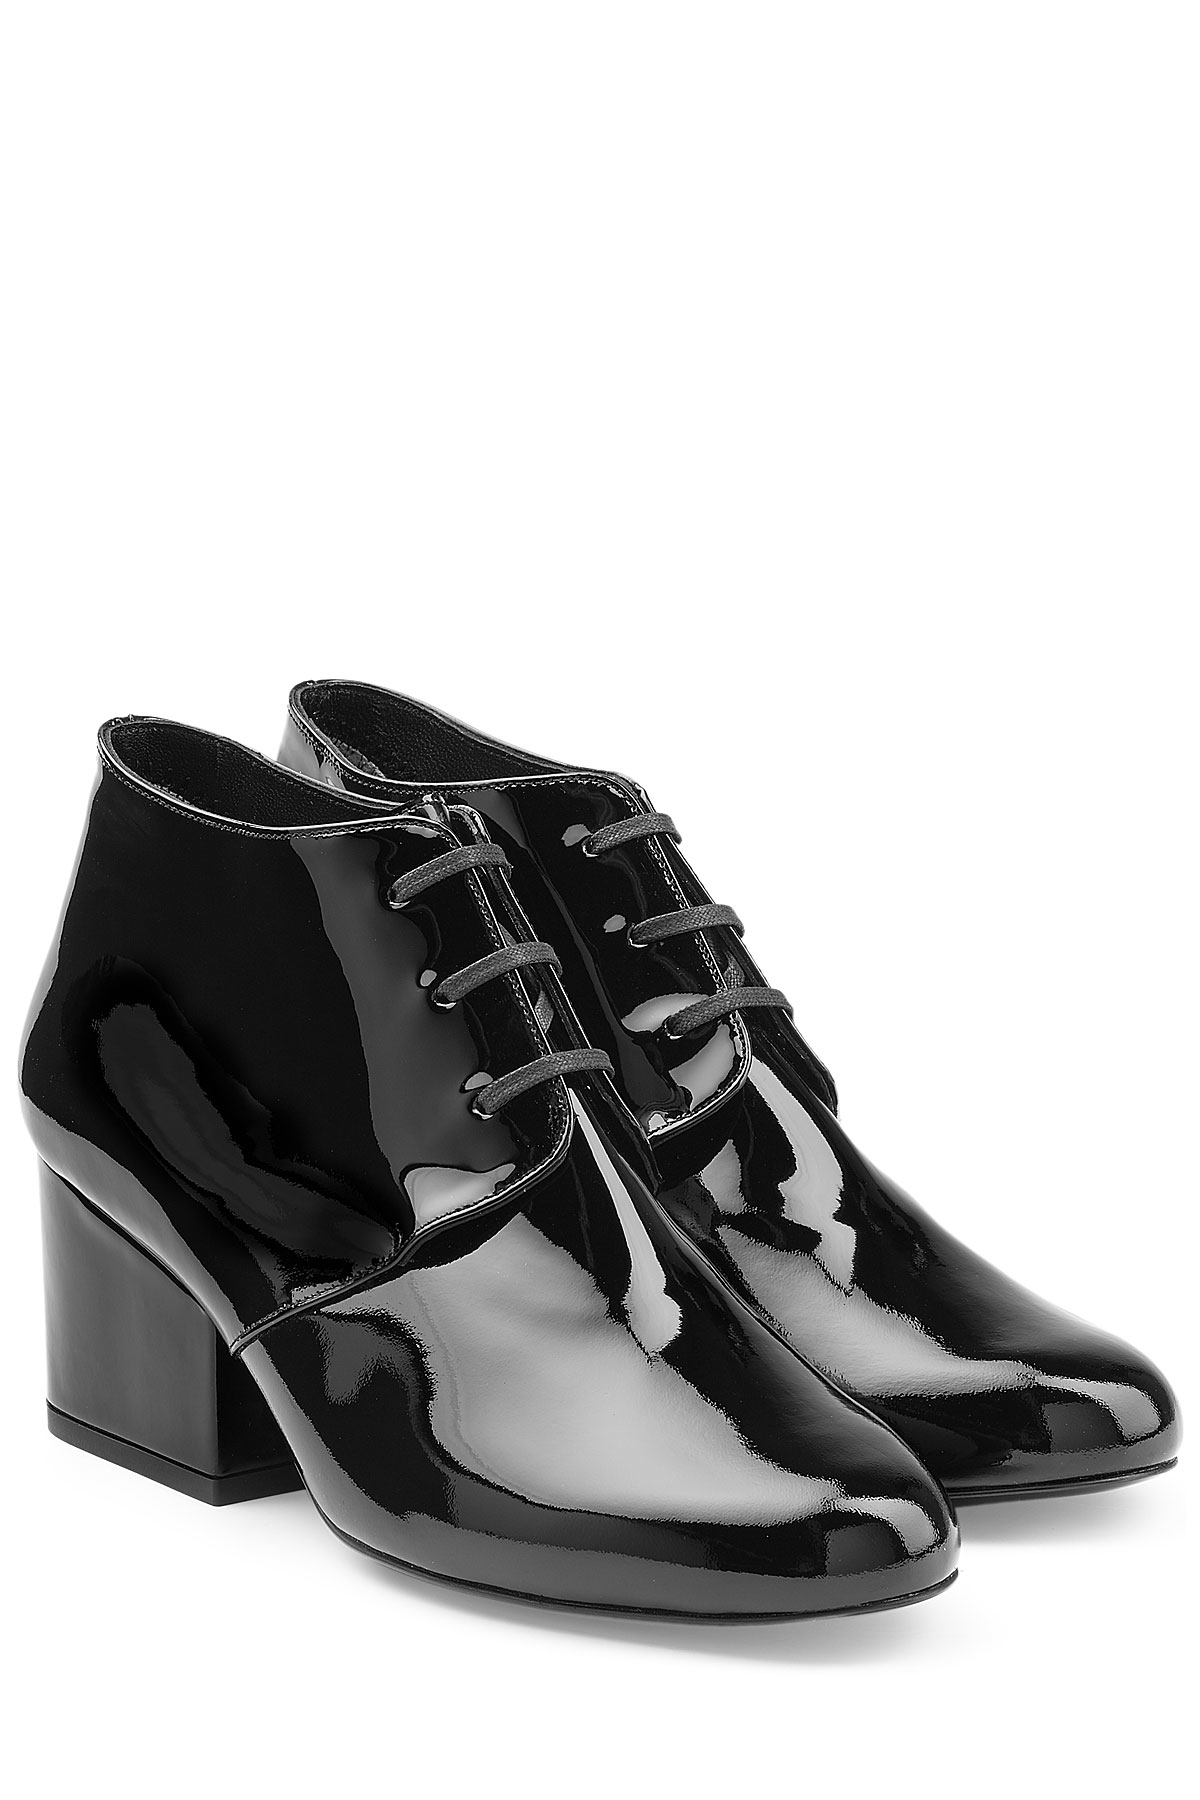 Robert Clergerie Patent Leather Lace Ups FR7gpgj2B